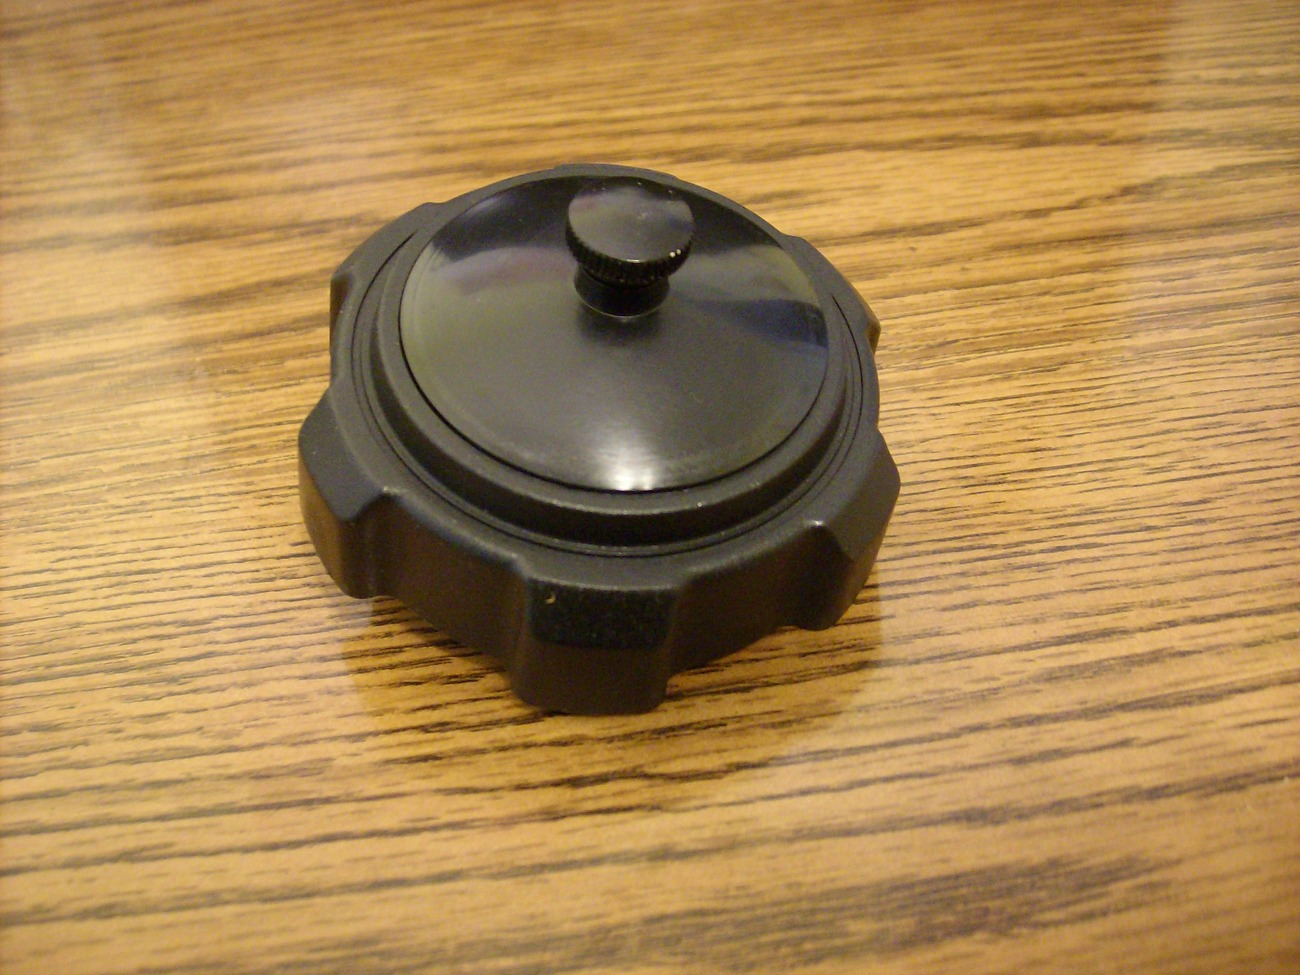 Grasshopper gas fuel cap 100210, lawn mower